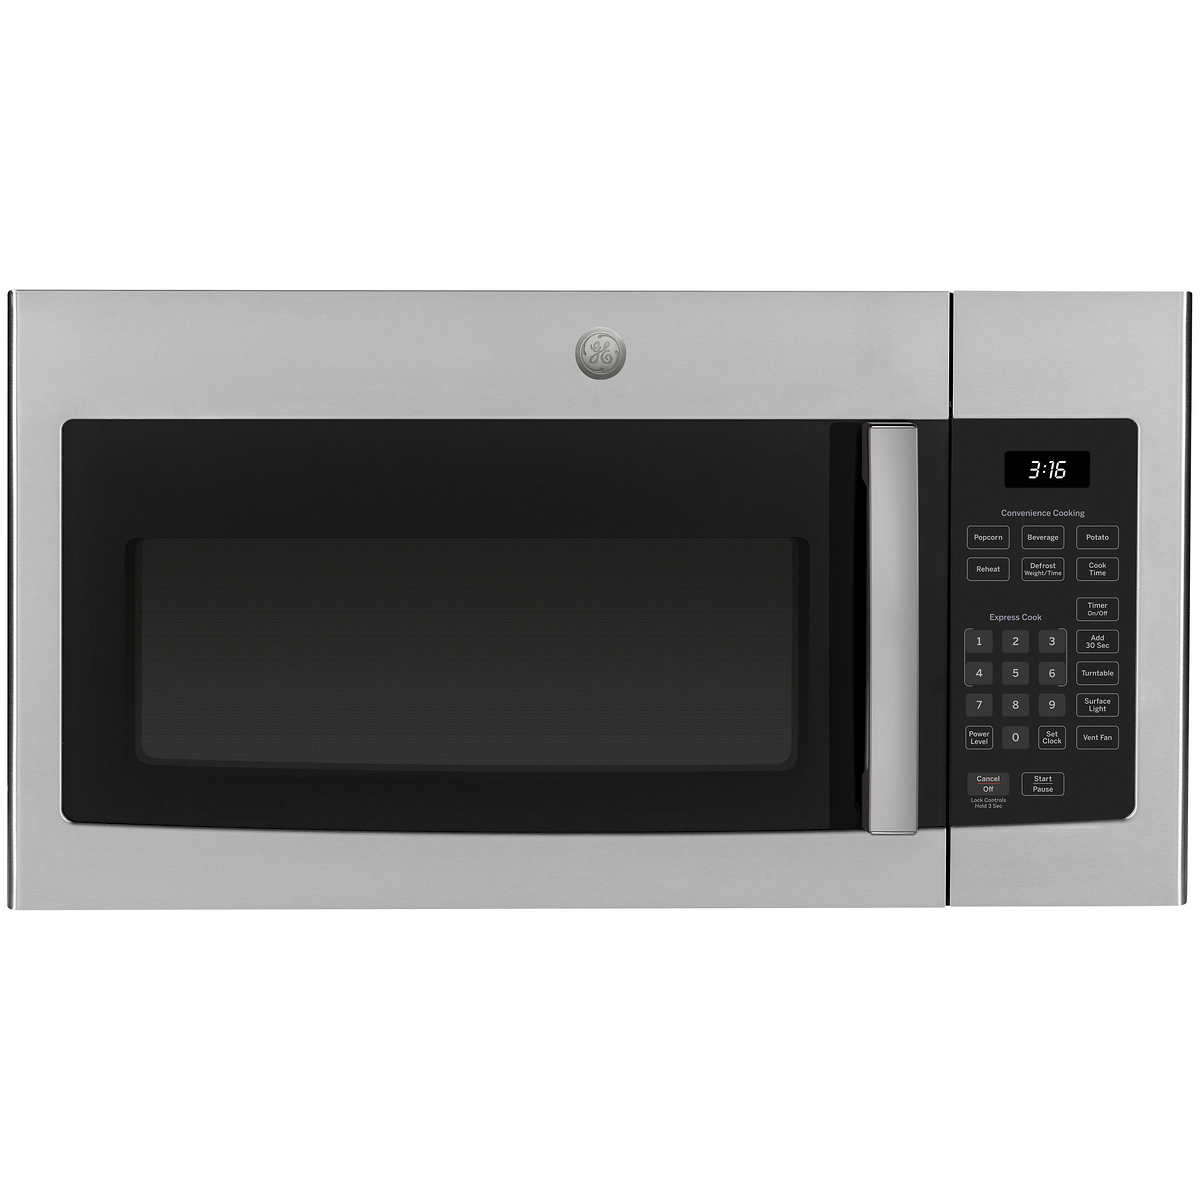 ge 1 6 cu ft over the range microwave oven with cooktop lighting and 300 cfm exhaust fan